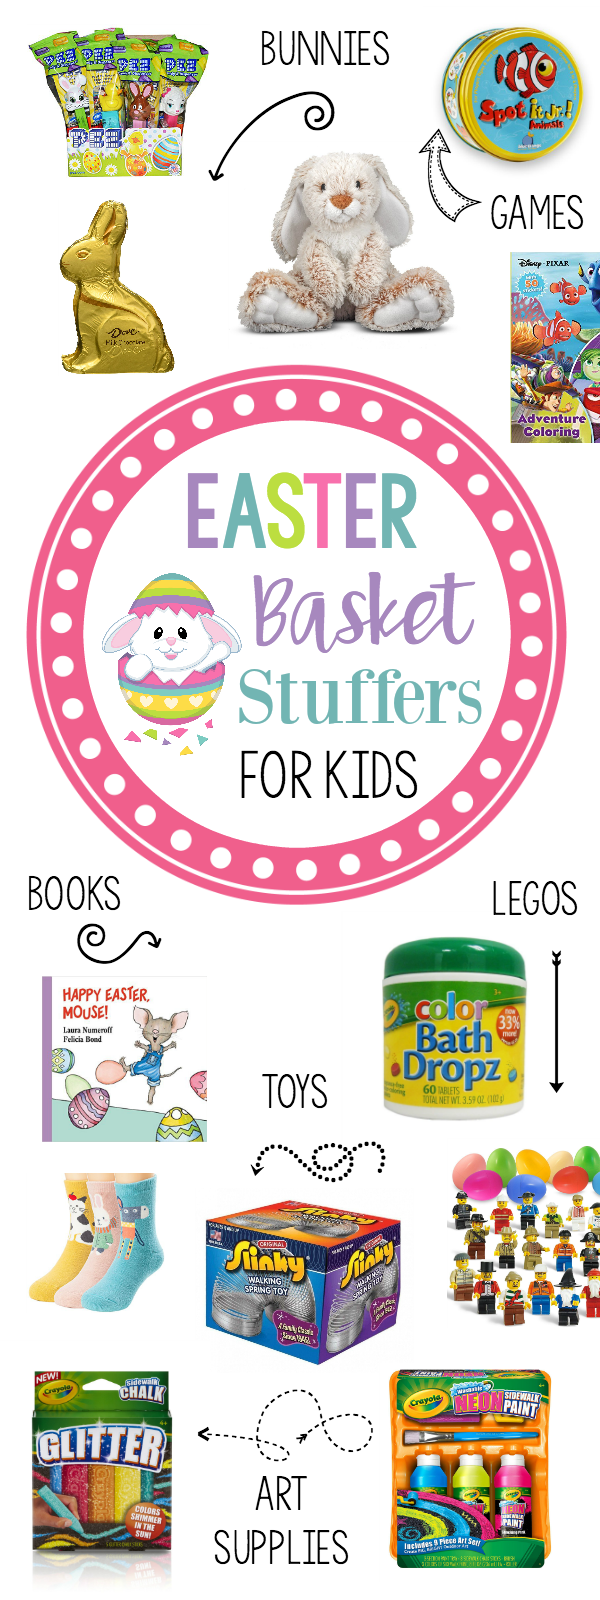 Cute and Fun Easter Basket Stuffers for Kids Under 10 Years Old